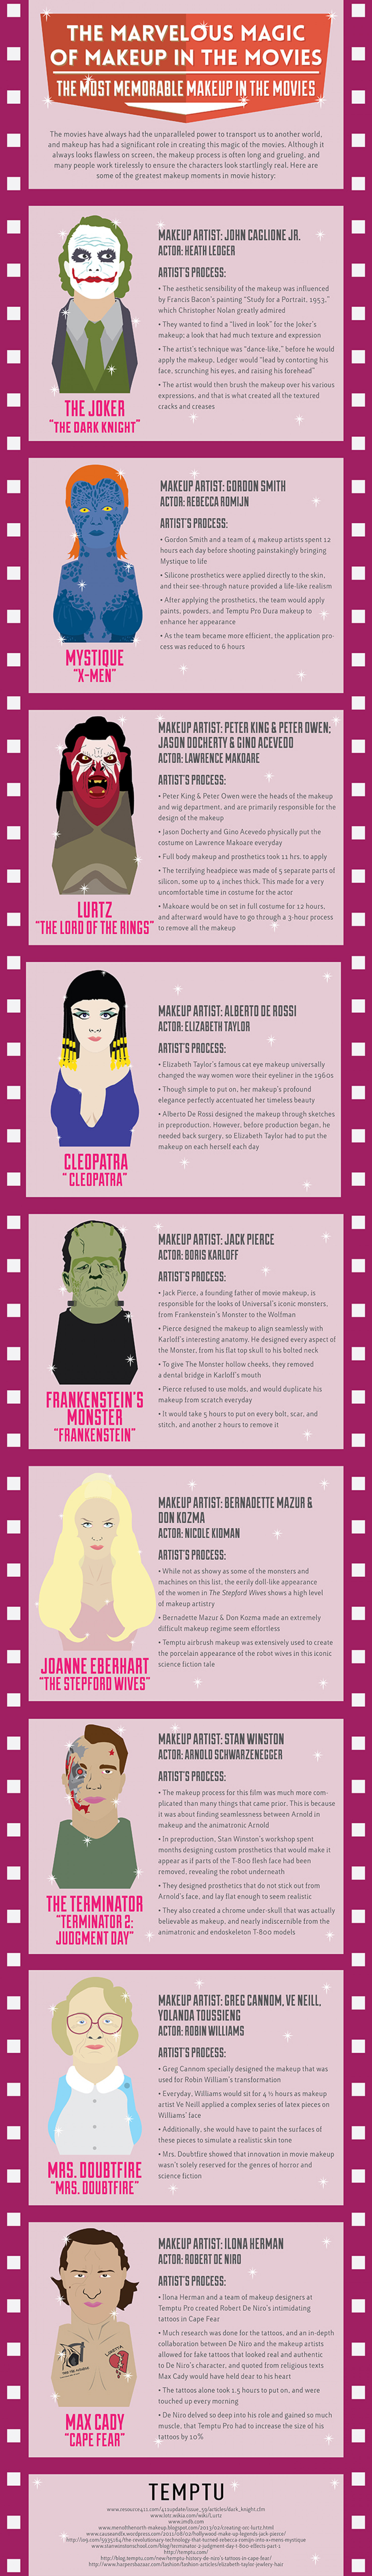 Most Memorable Makeup In The Movies Infographic